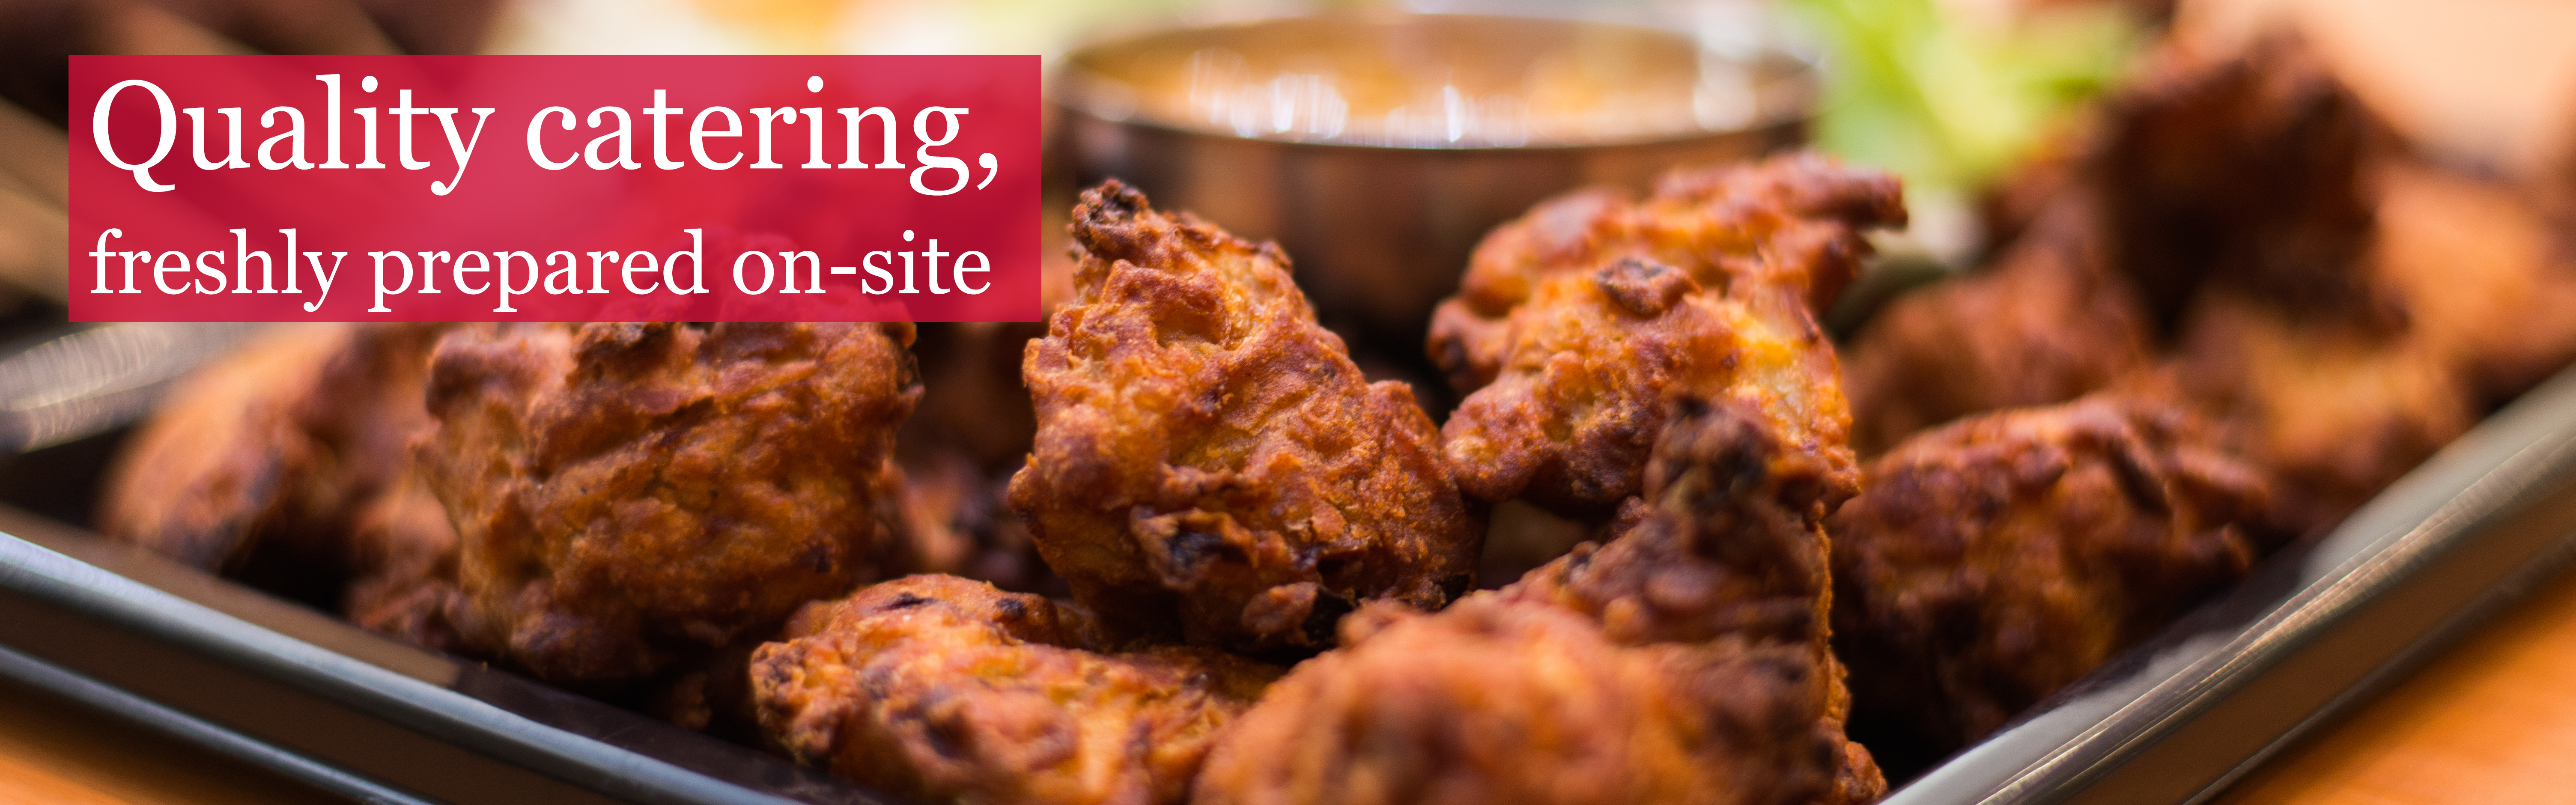 Quality catering, freshly prepared on-site